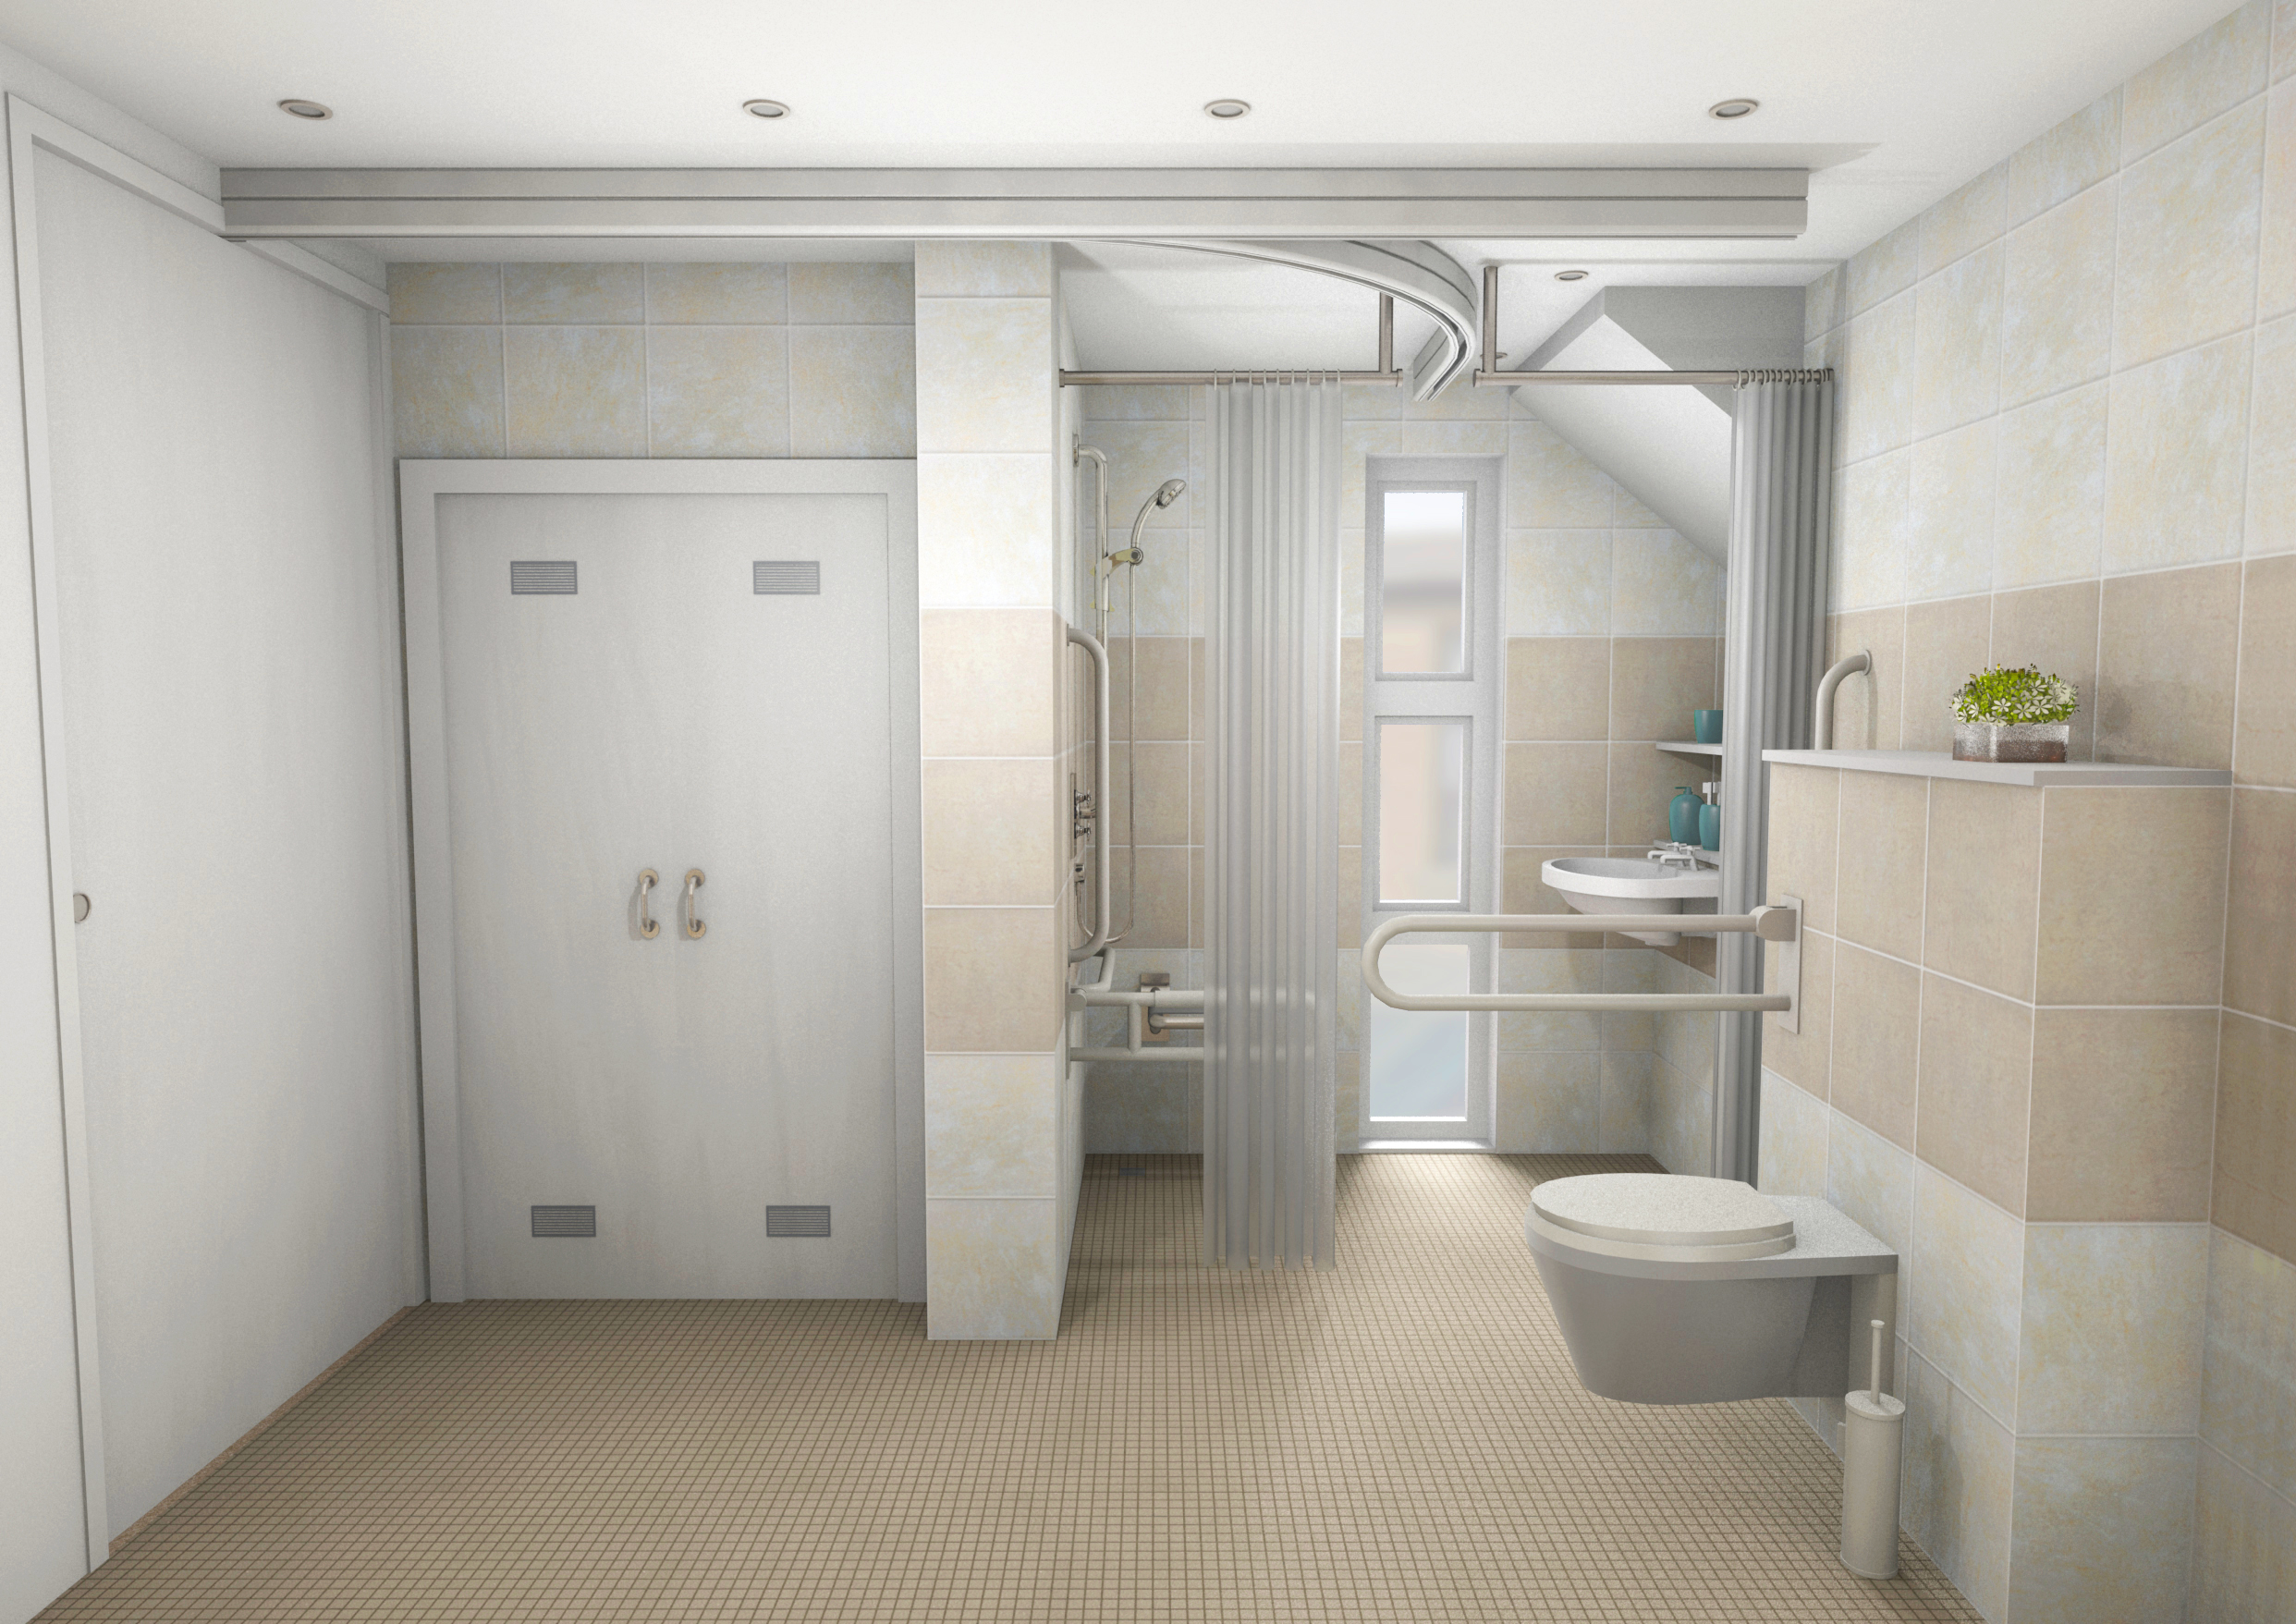 The refurbished home includes a wet room that